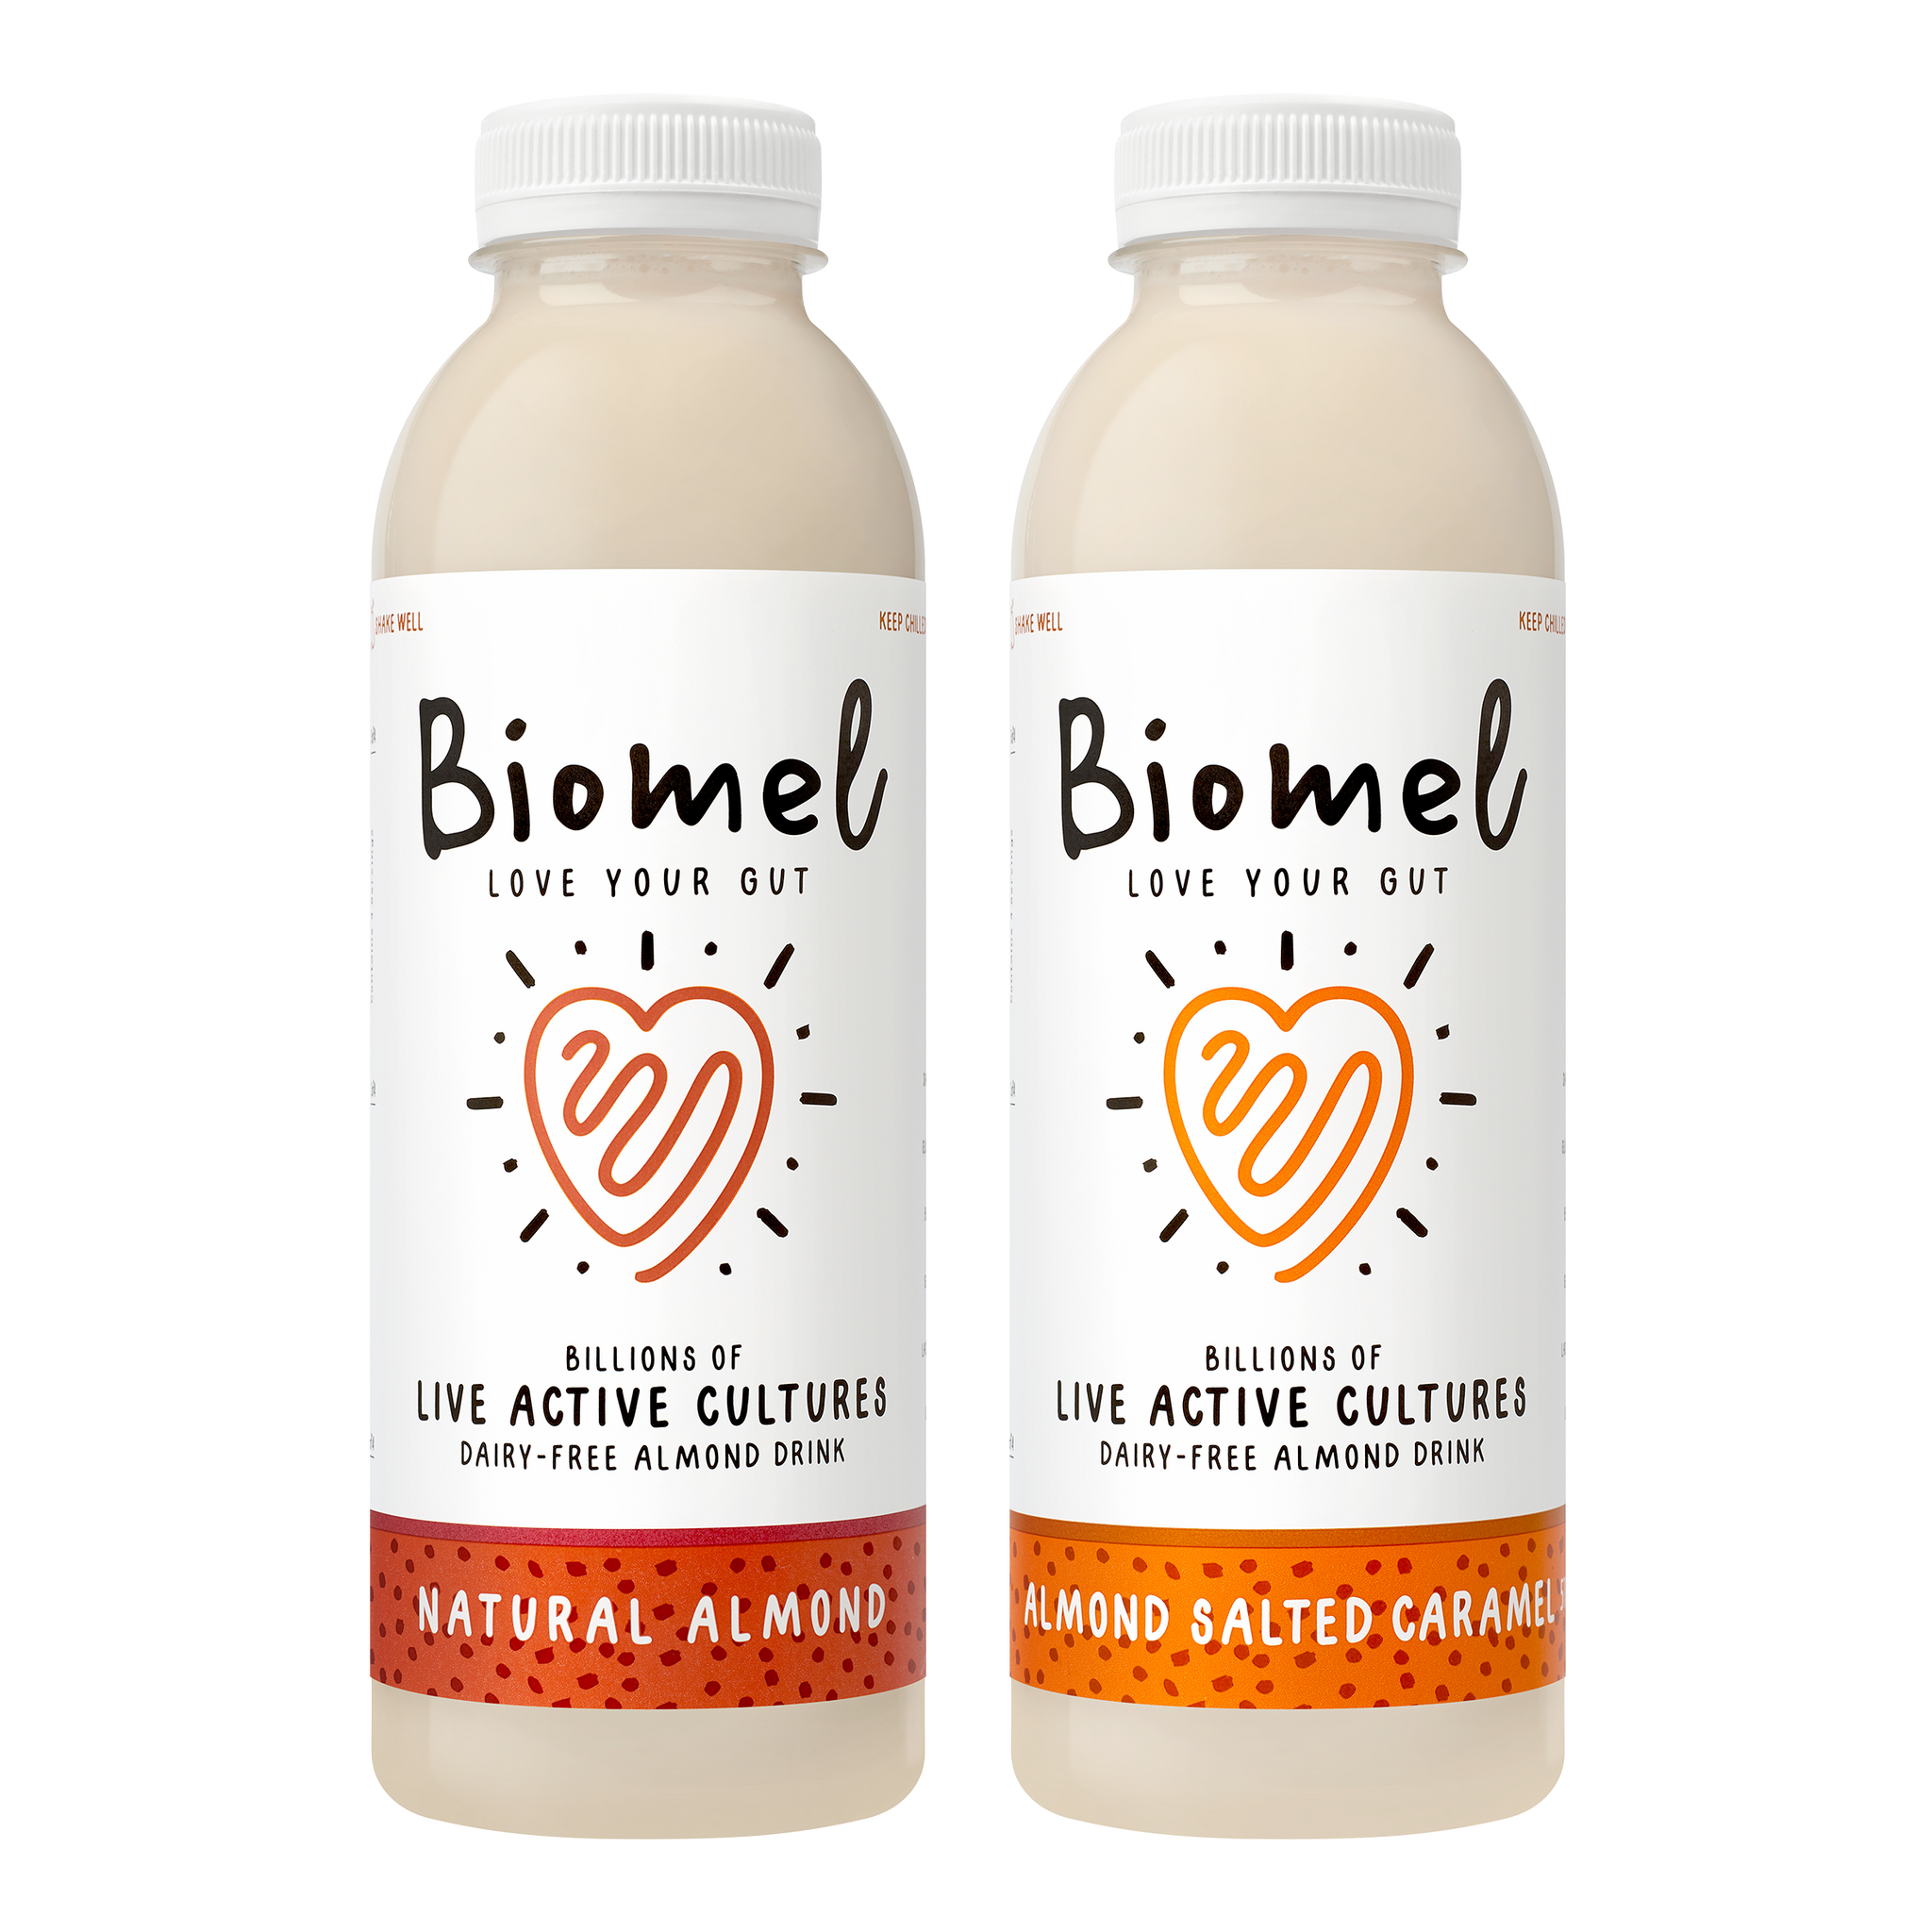 Biomel Almond Probiotic Drinks